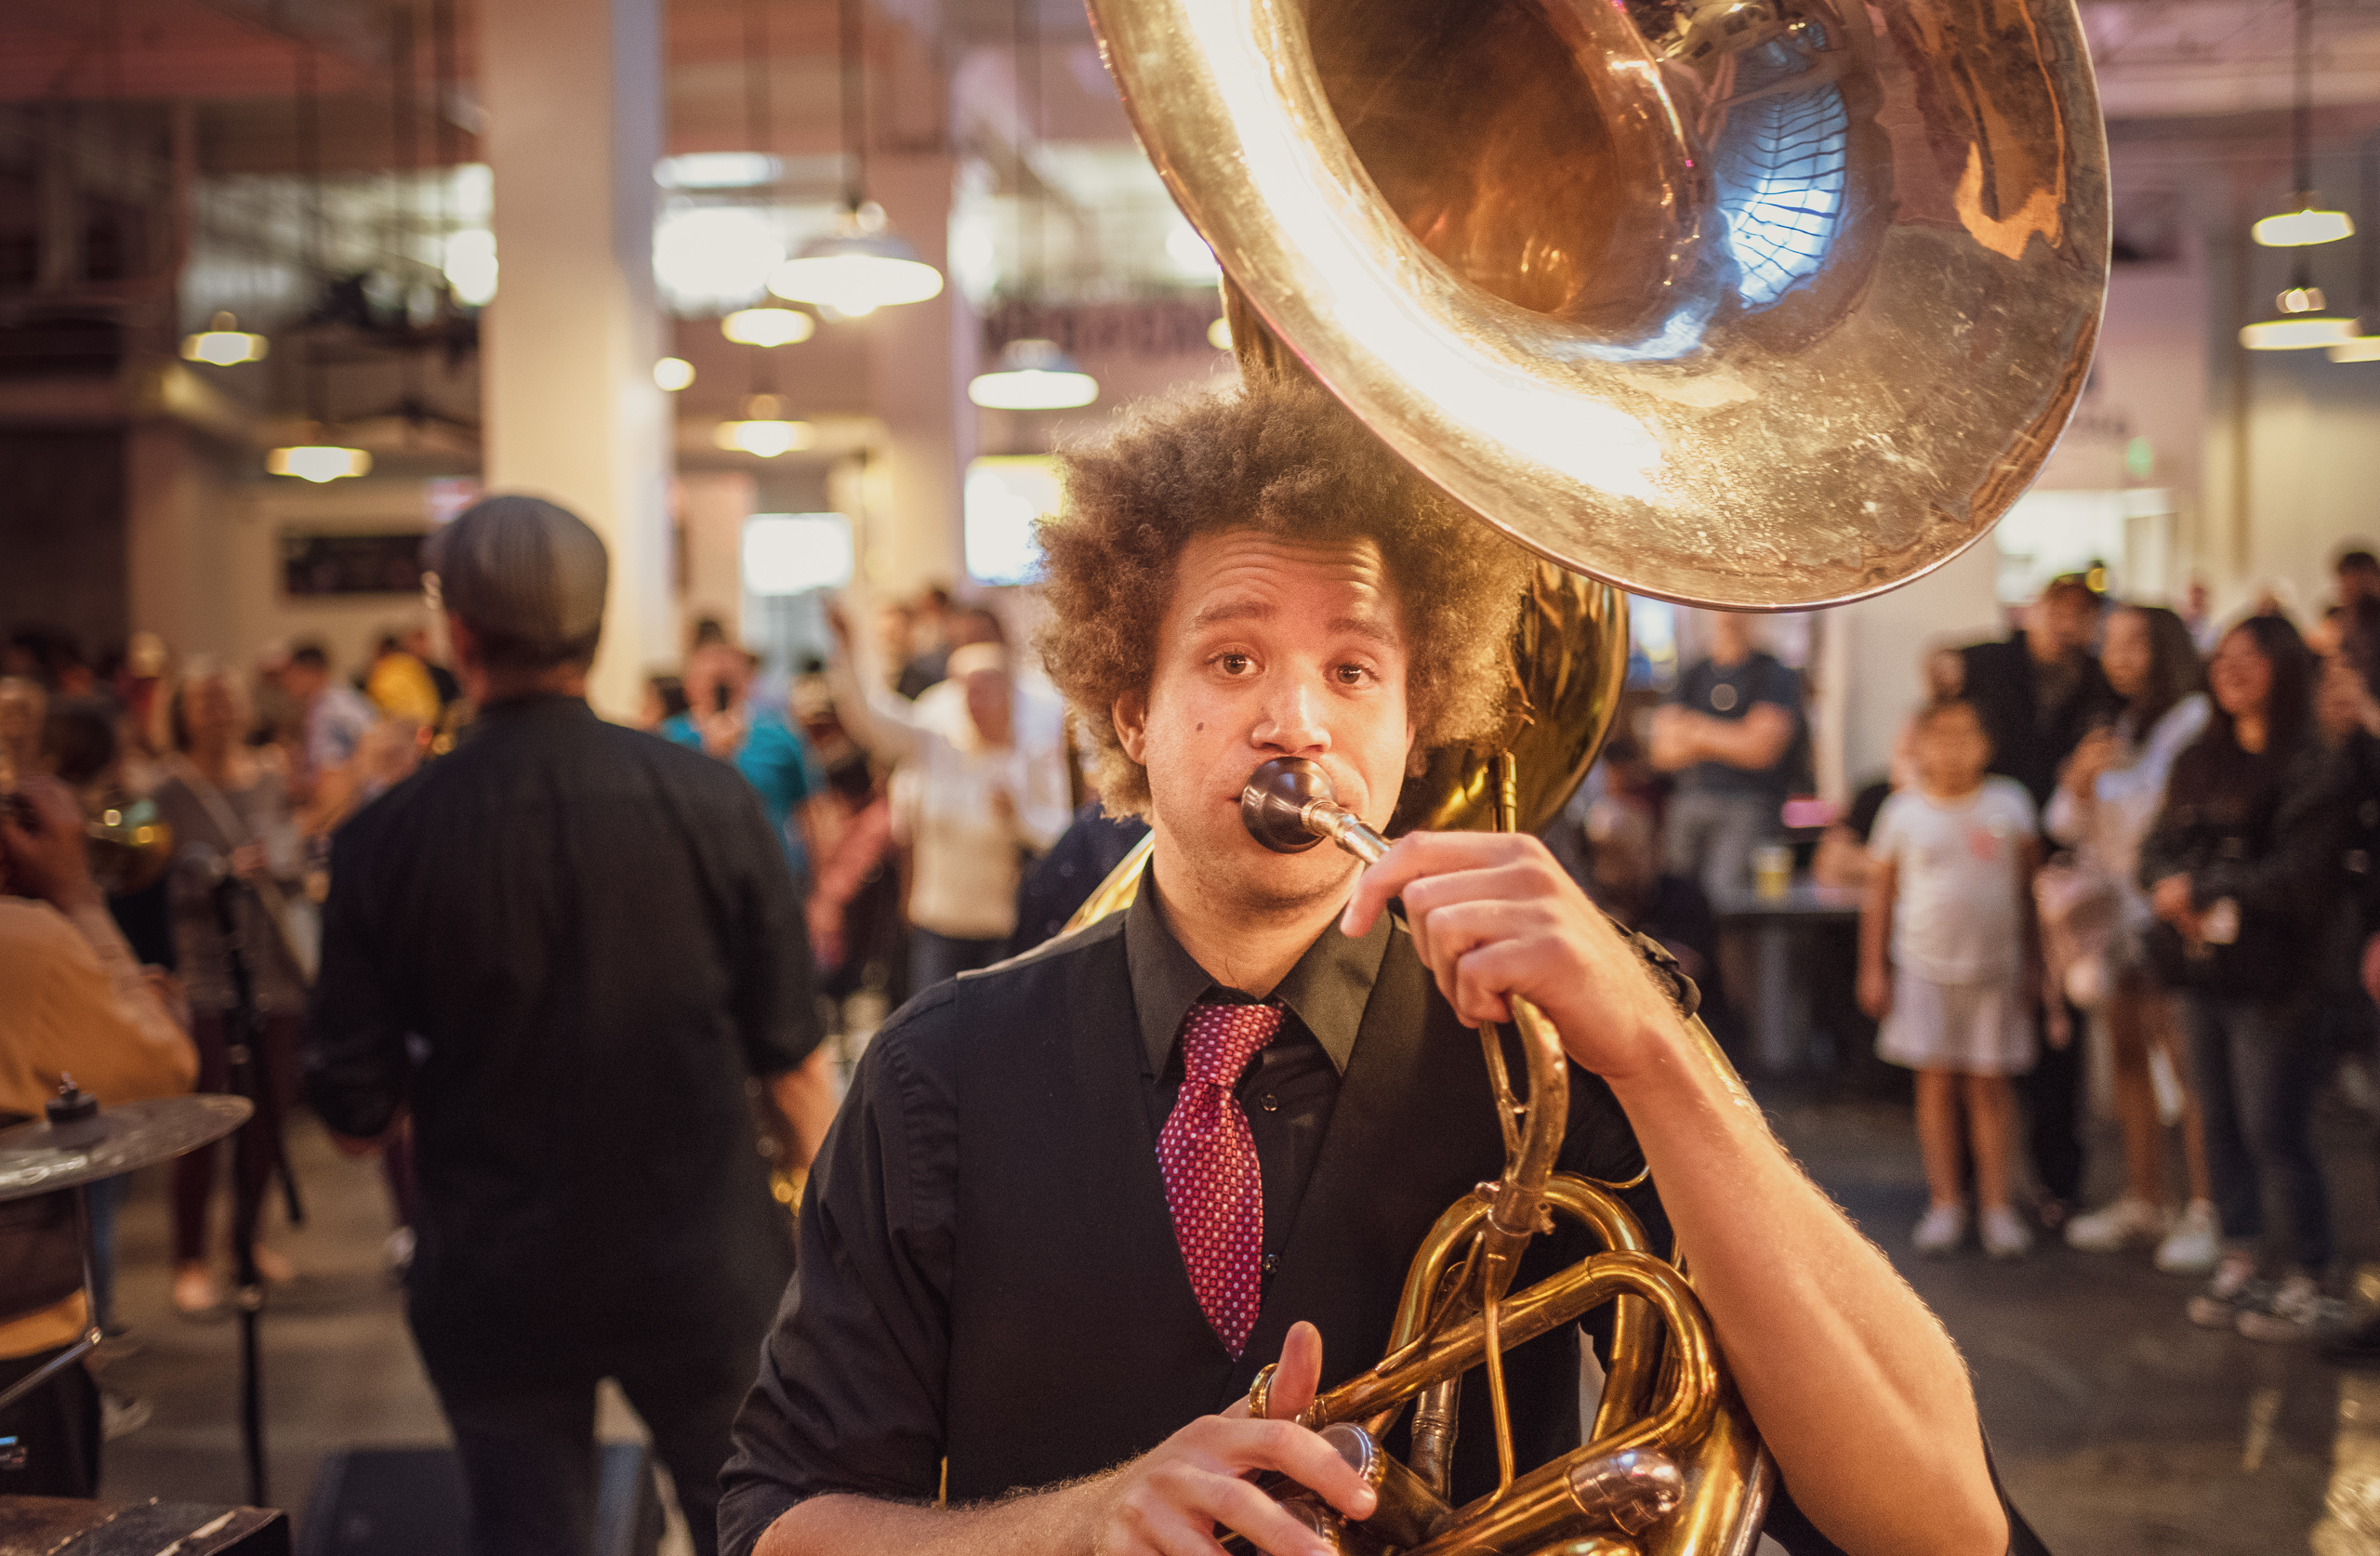 The Mudbug Brass Band playing at the DTLA Oyster Festival at Grand Central Market in Los Angeles, California